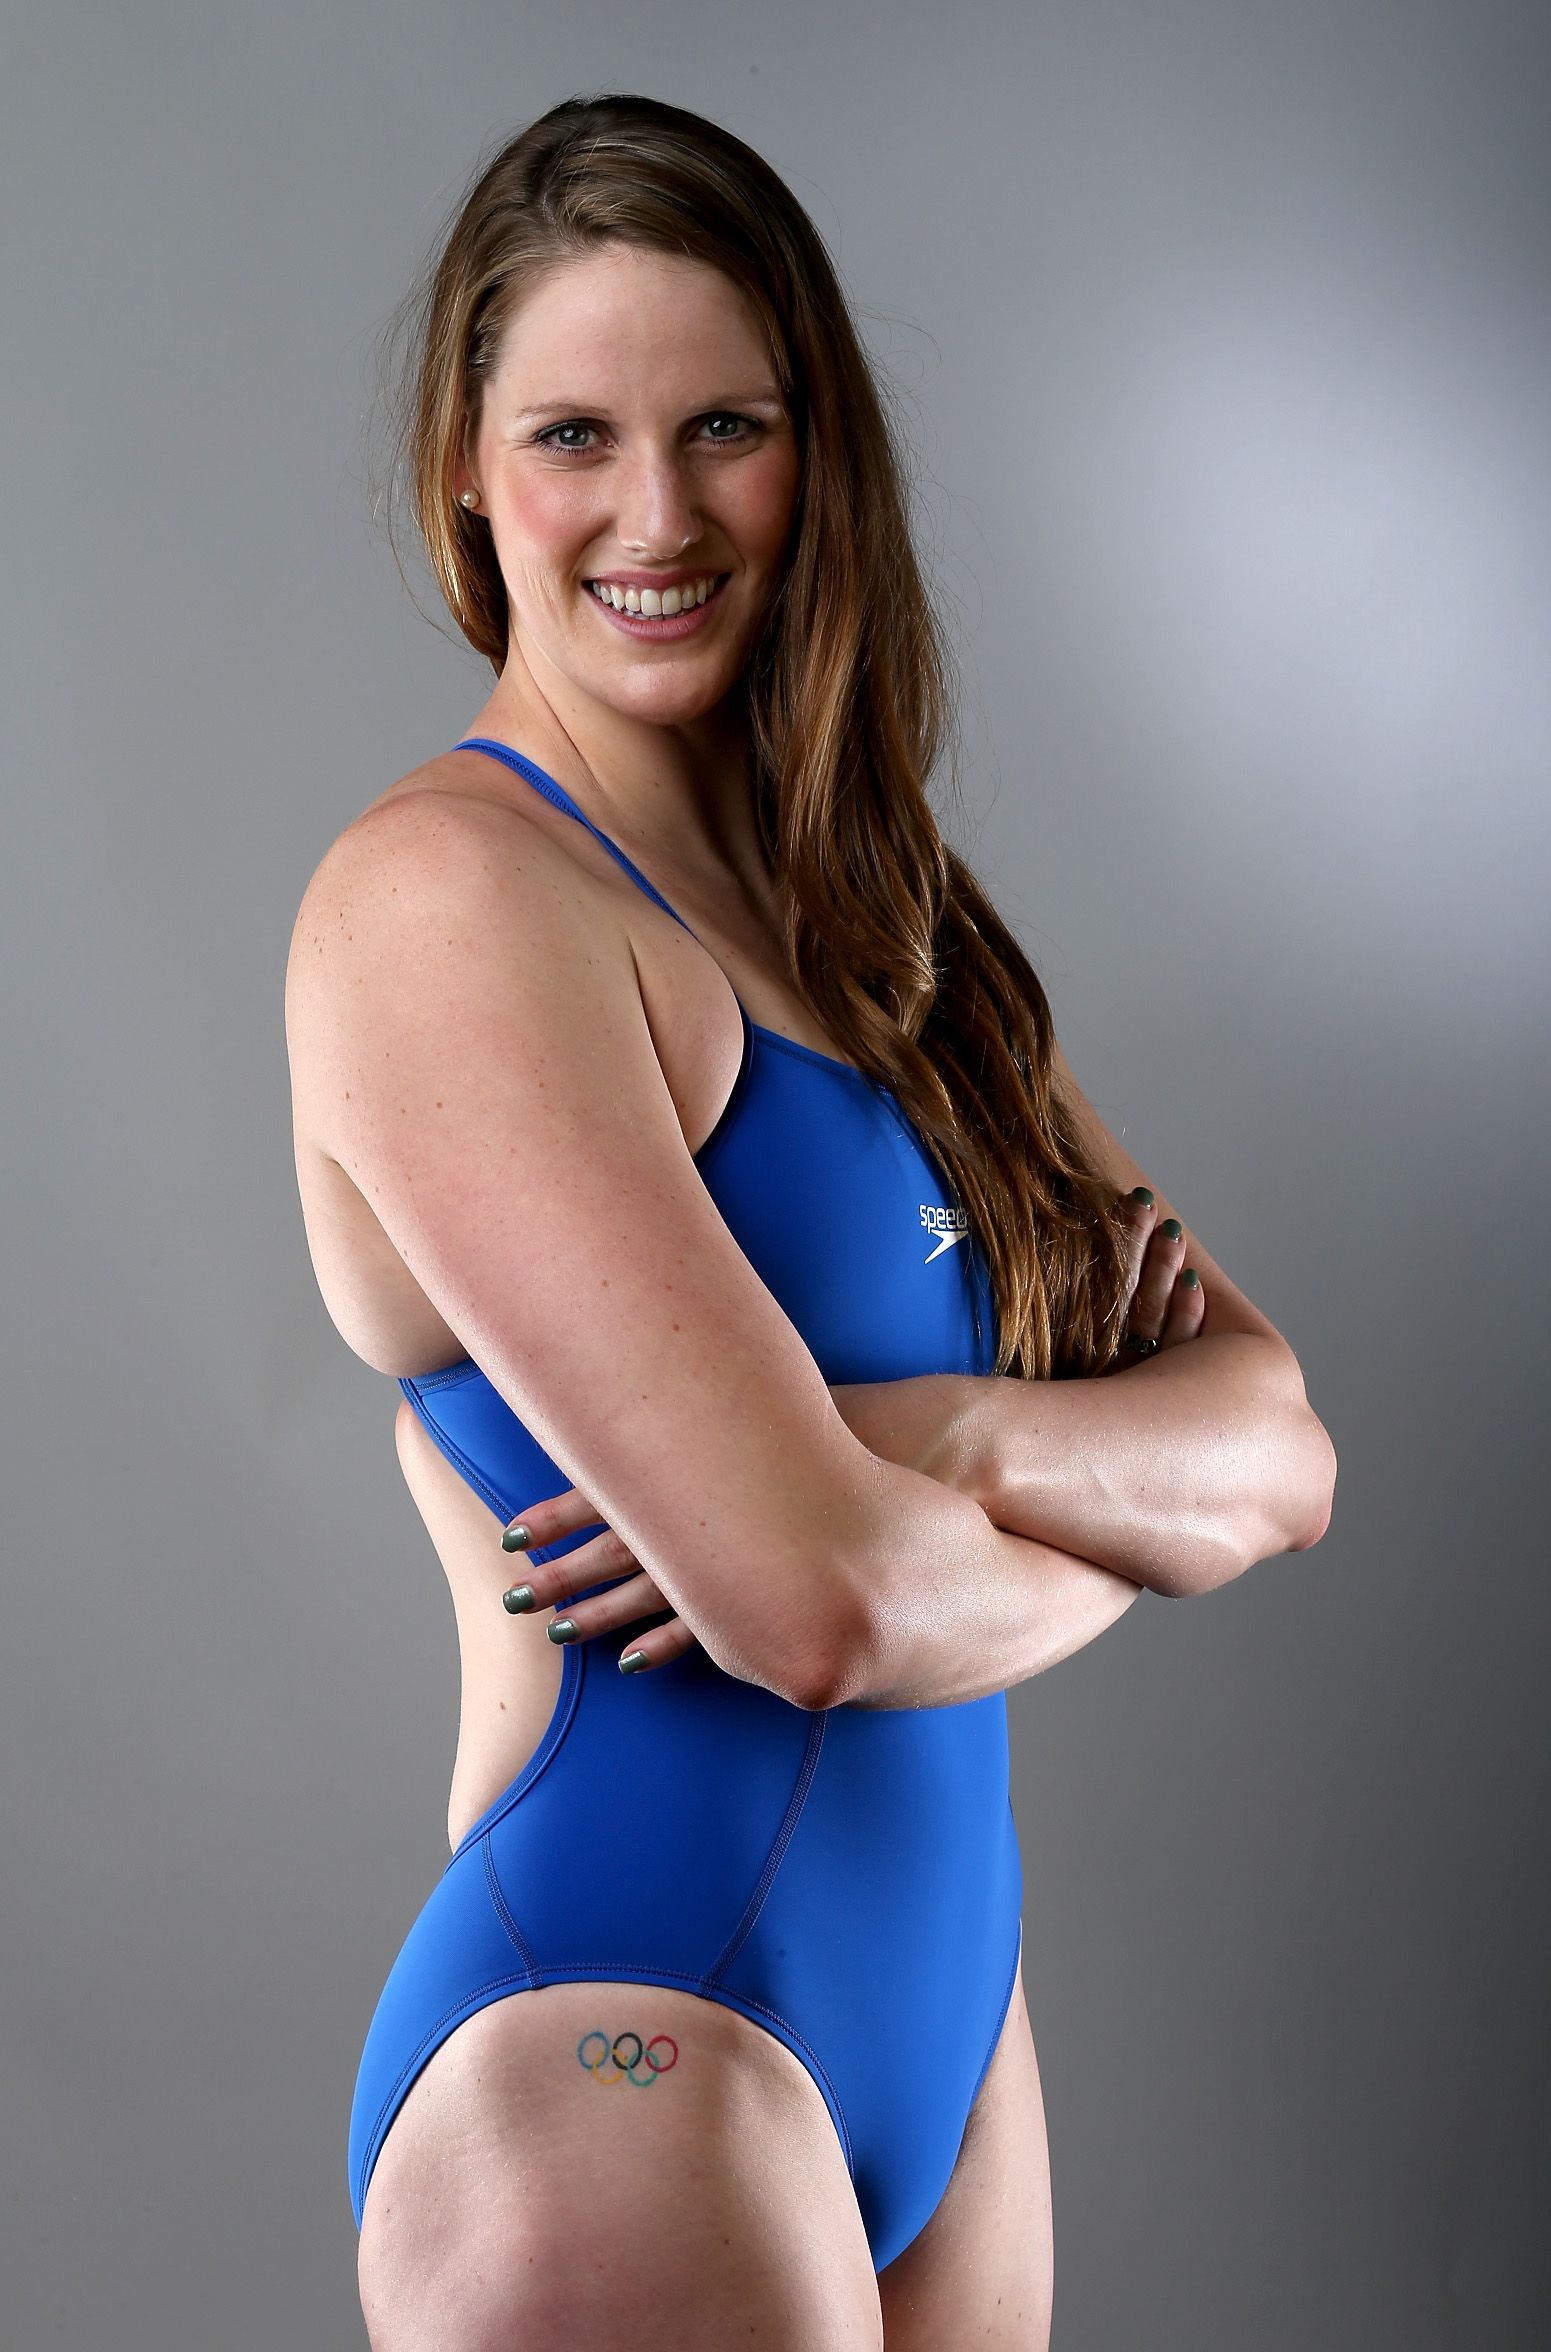 ¿Cuánto mide Missy Franklin? - Real height 1466106790-gettyimages-514193636